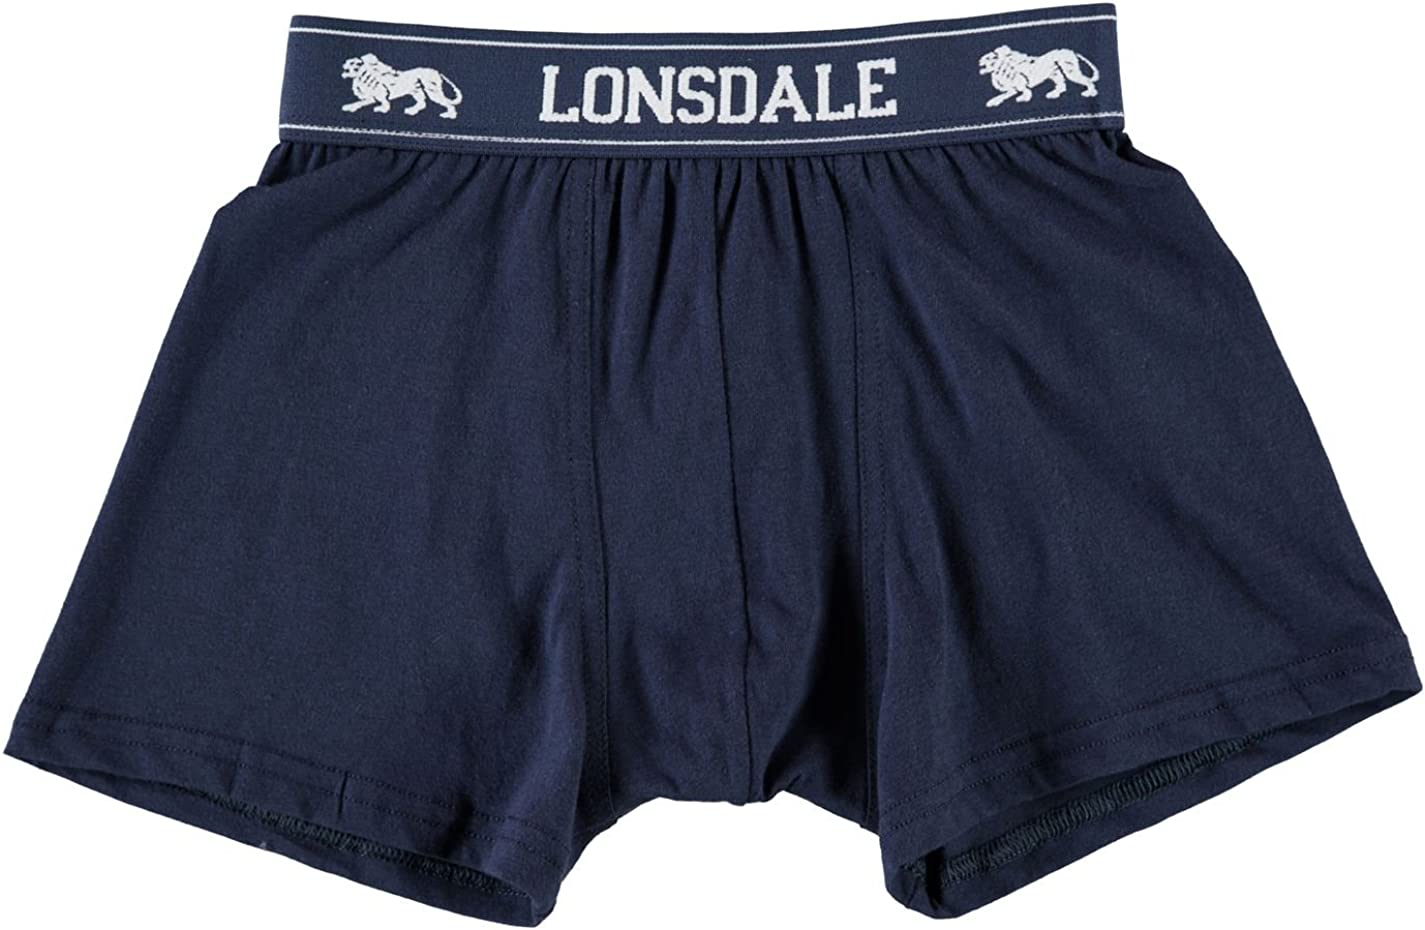 Lonsdale Boys 2 Pack Trunk